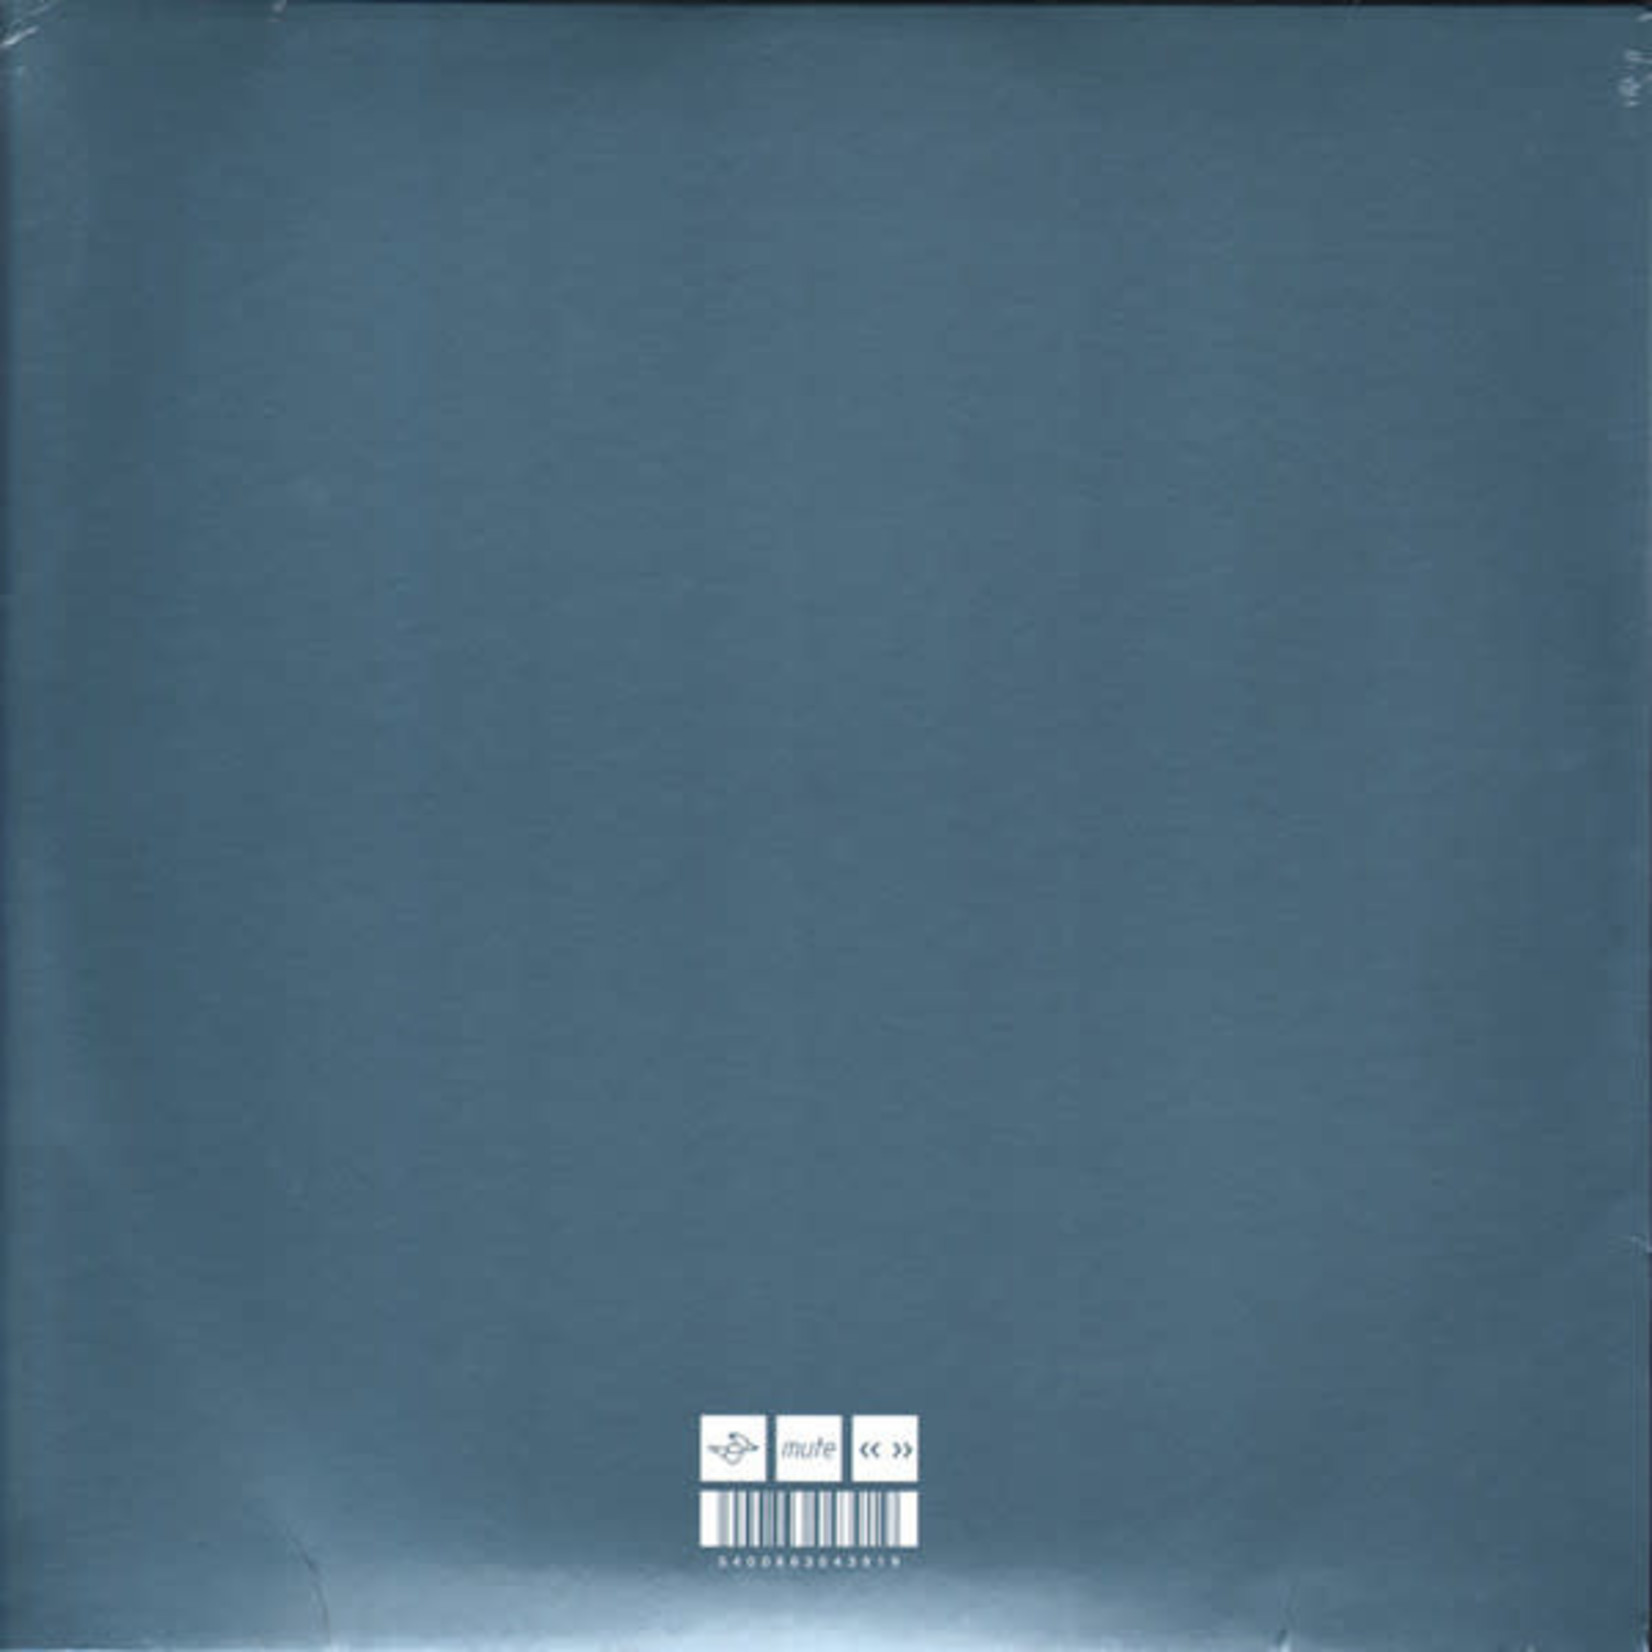 NEW ORDER BE A REBEL REMIXED  LTD EDITION CLEAR 2LP